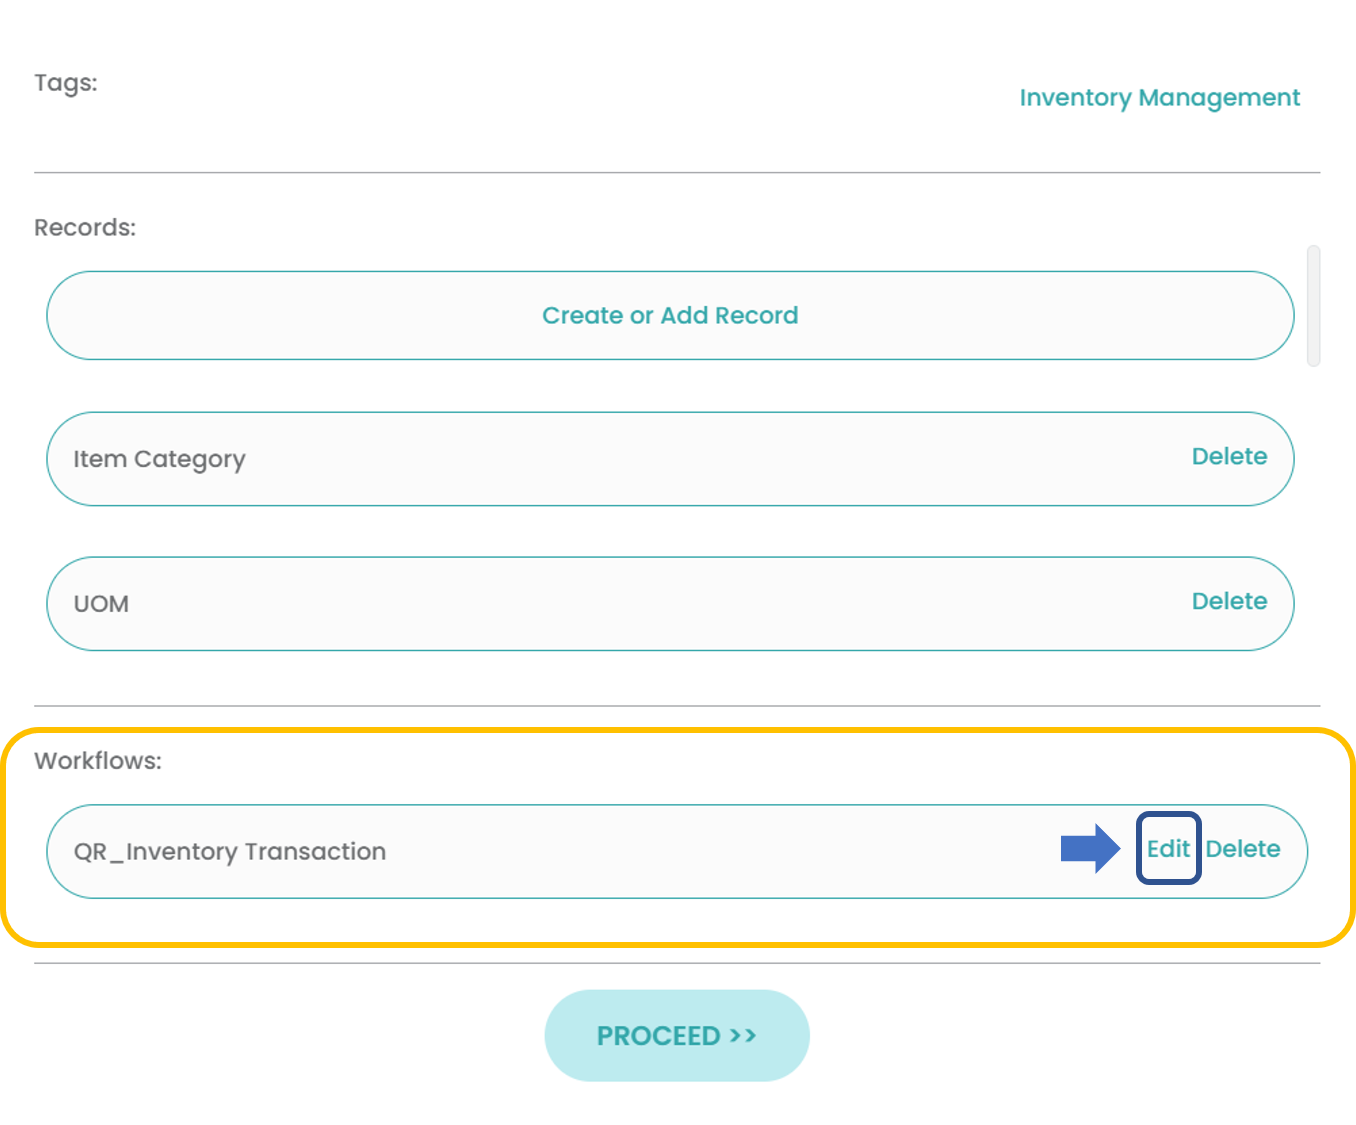 Fig. 2.1: Scroll down the Information Setup pane to edit the Workflow Template name